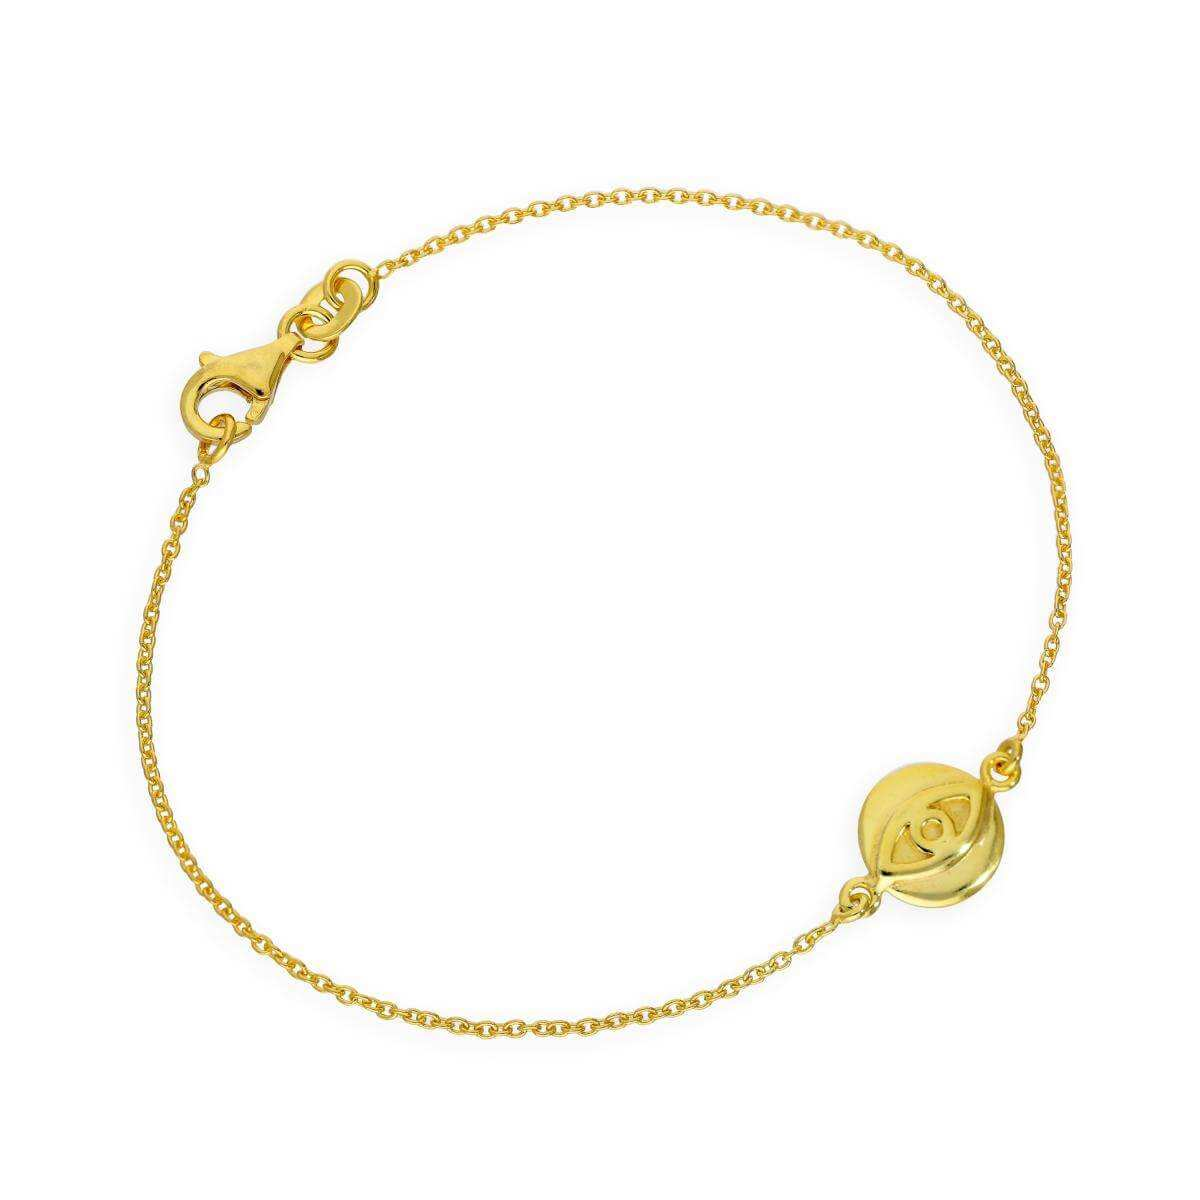 Gold Plated Sterling Silver 7 Inch Evil Eye Bracelet